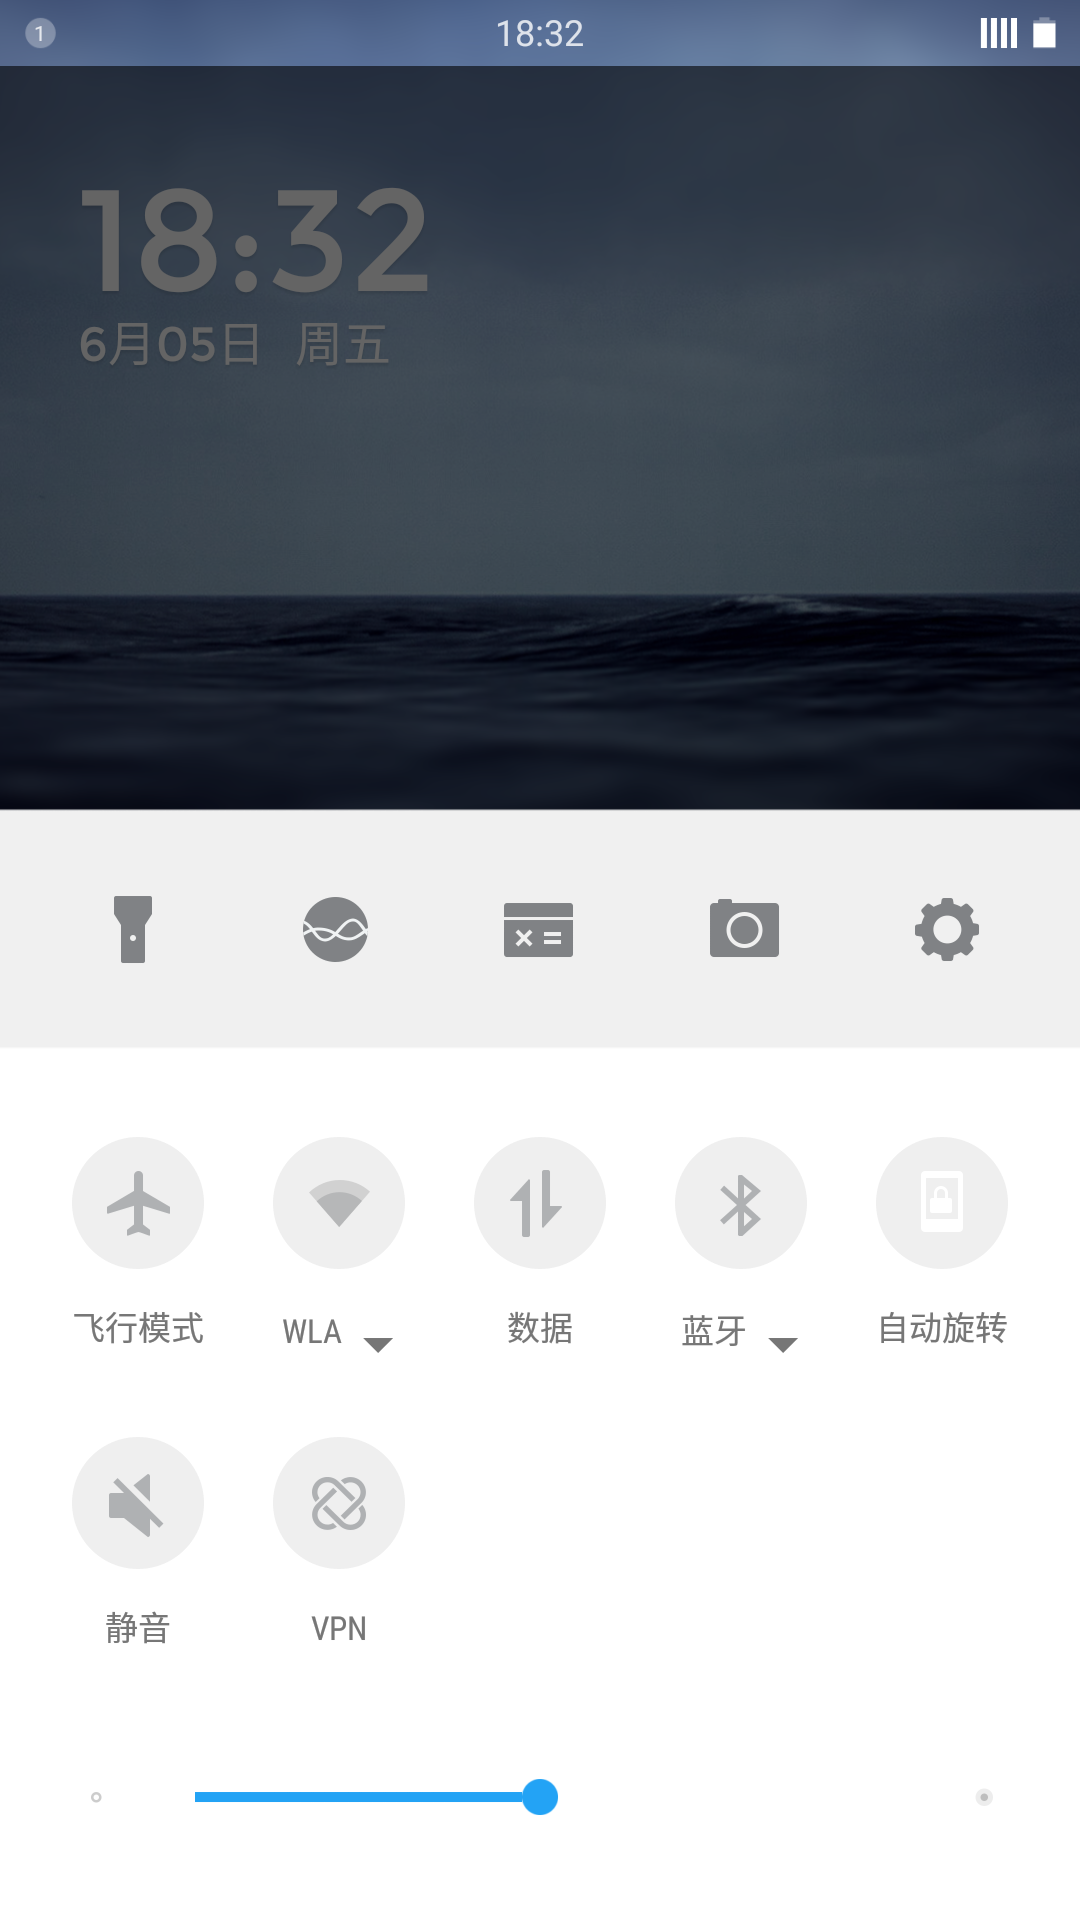 Screenshot_2015-06-05-18-32-29.png